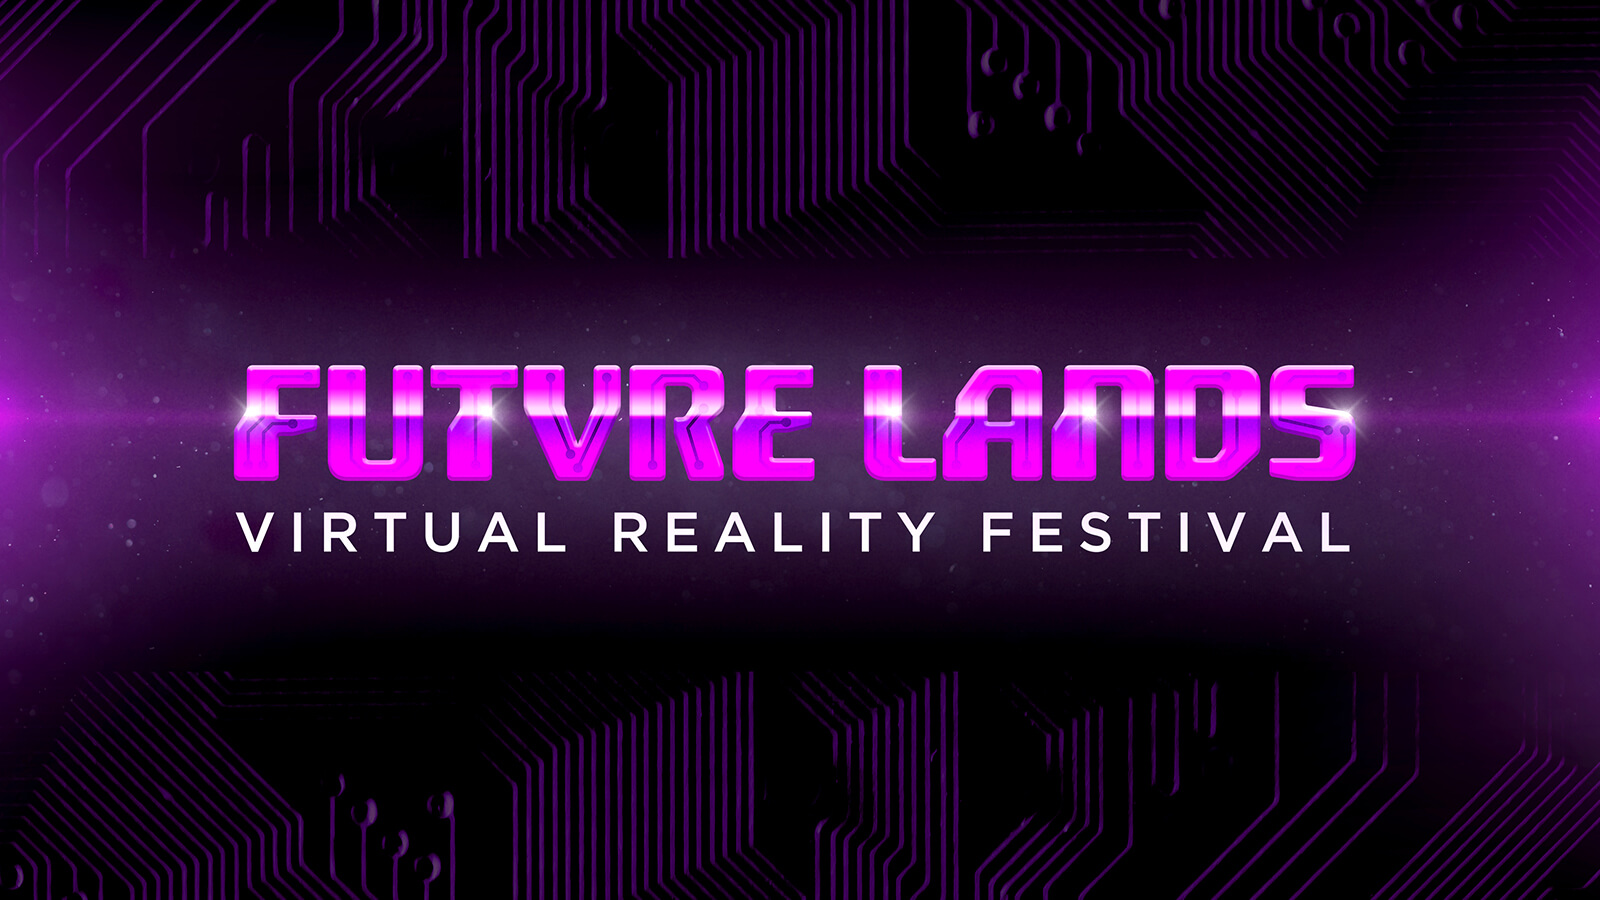 The First Virtual Reality Festival Completely inVR